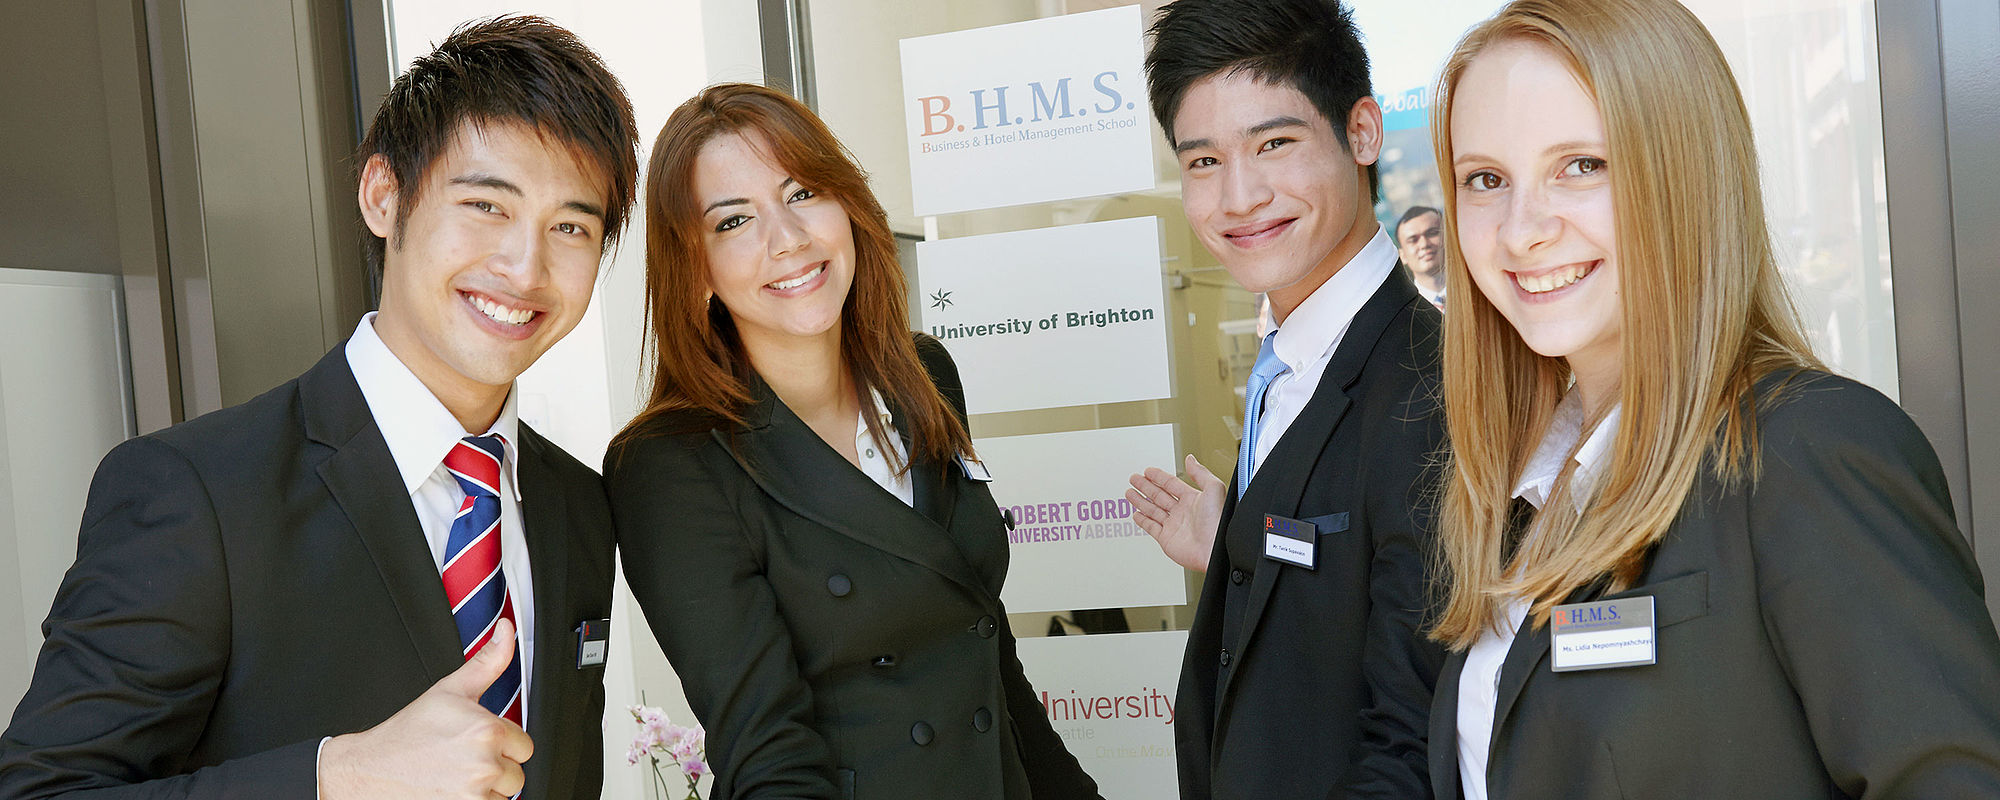 B.H.M.S. Business & Hotel Management School in Lucerne